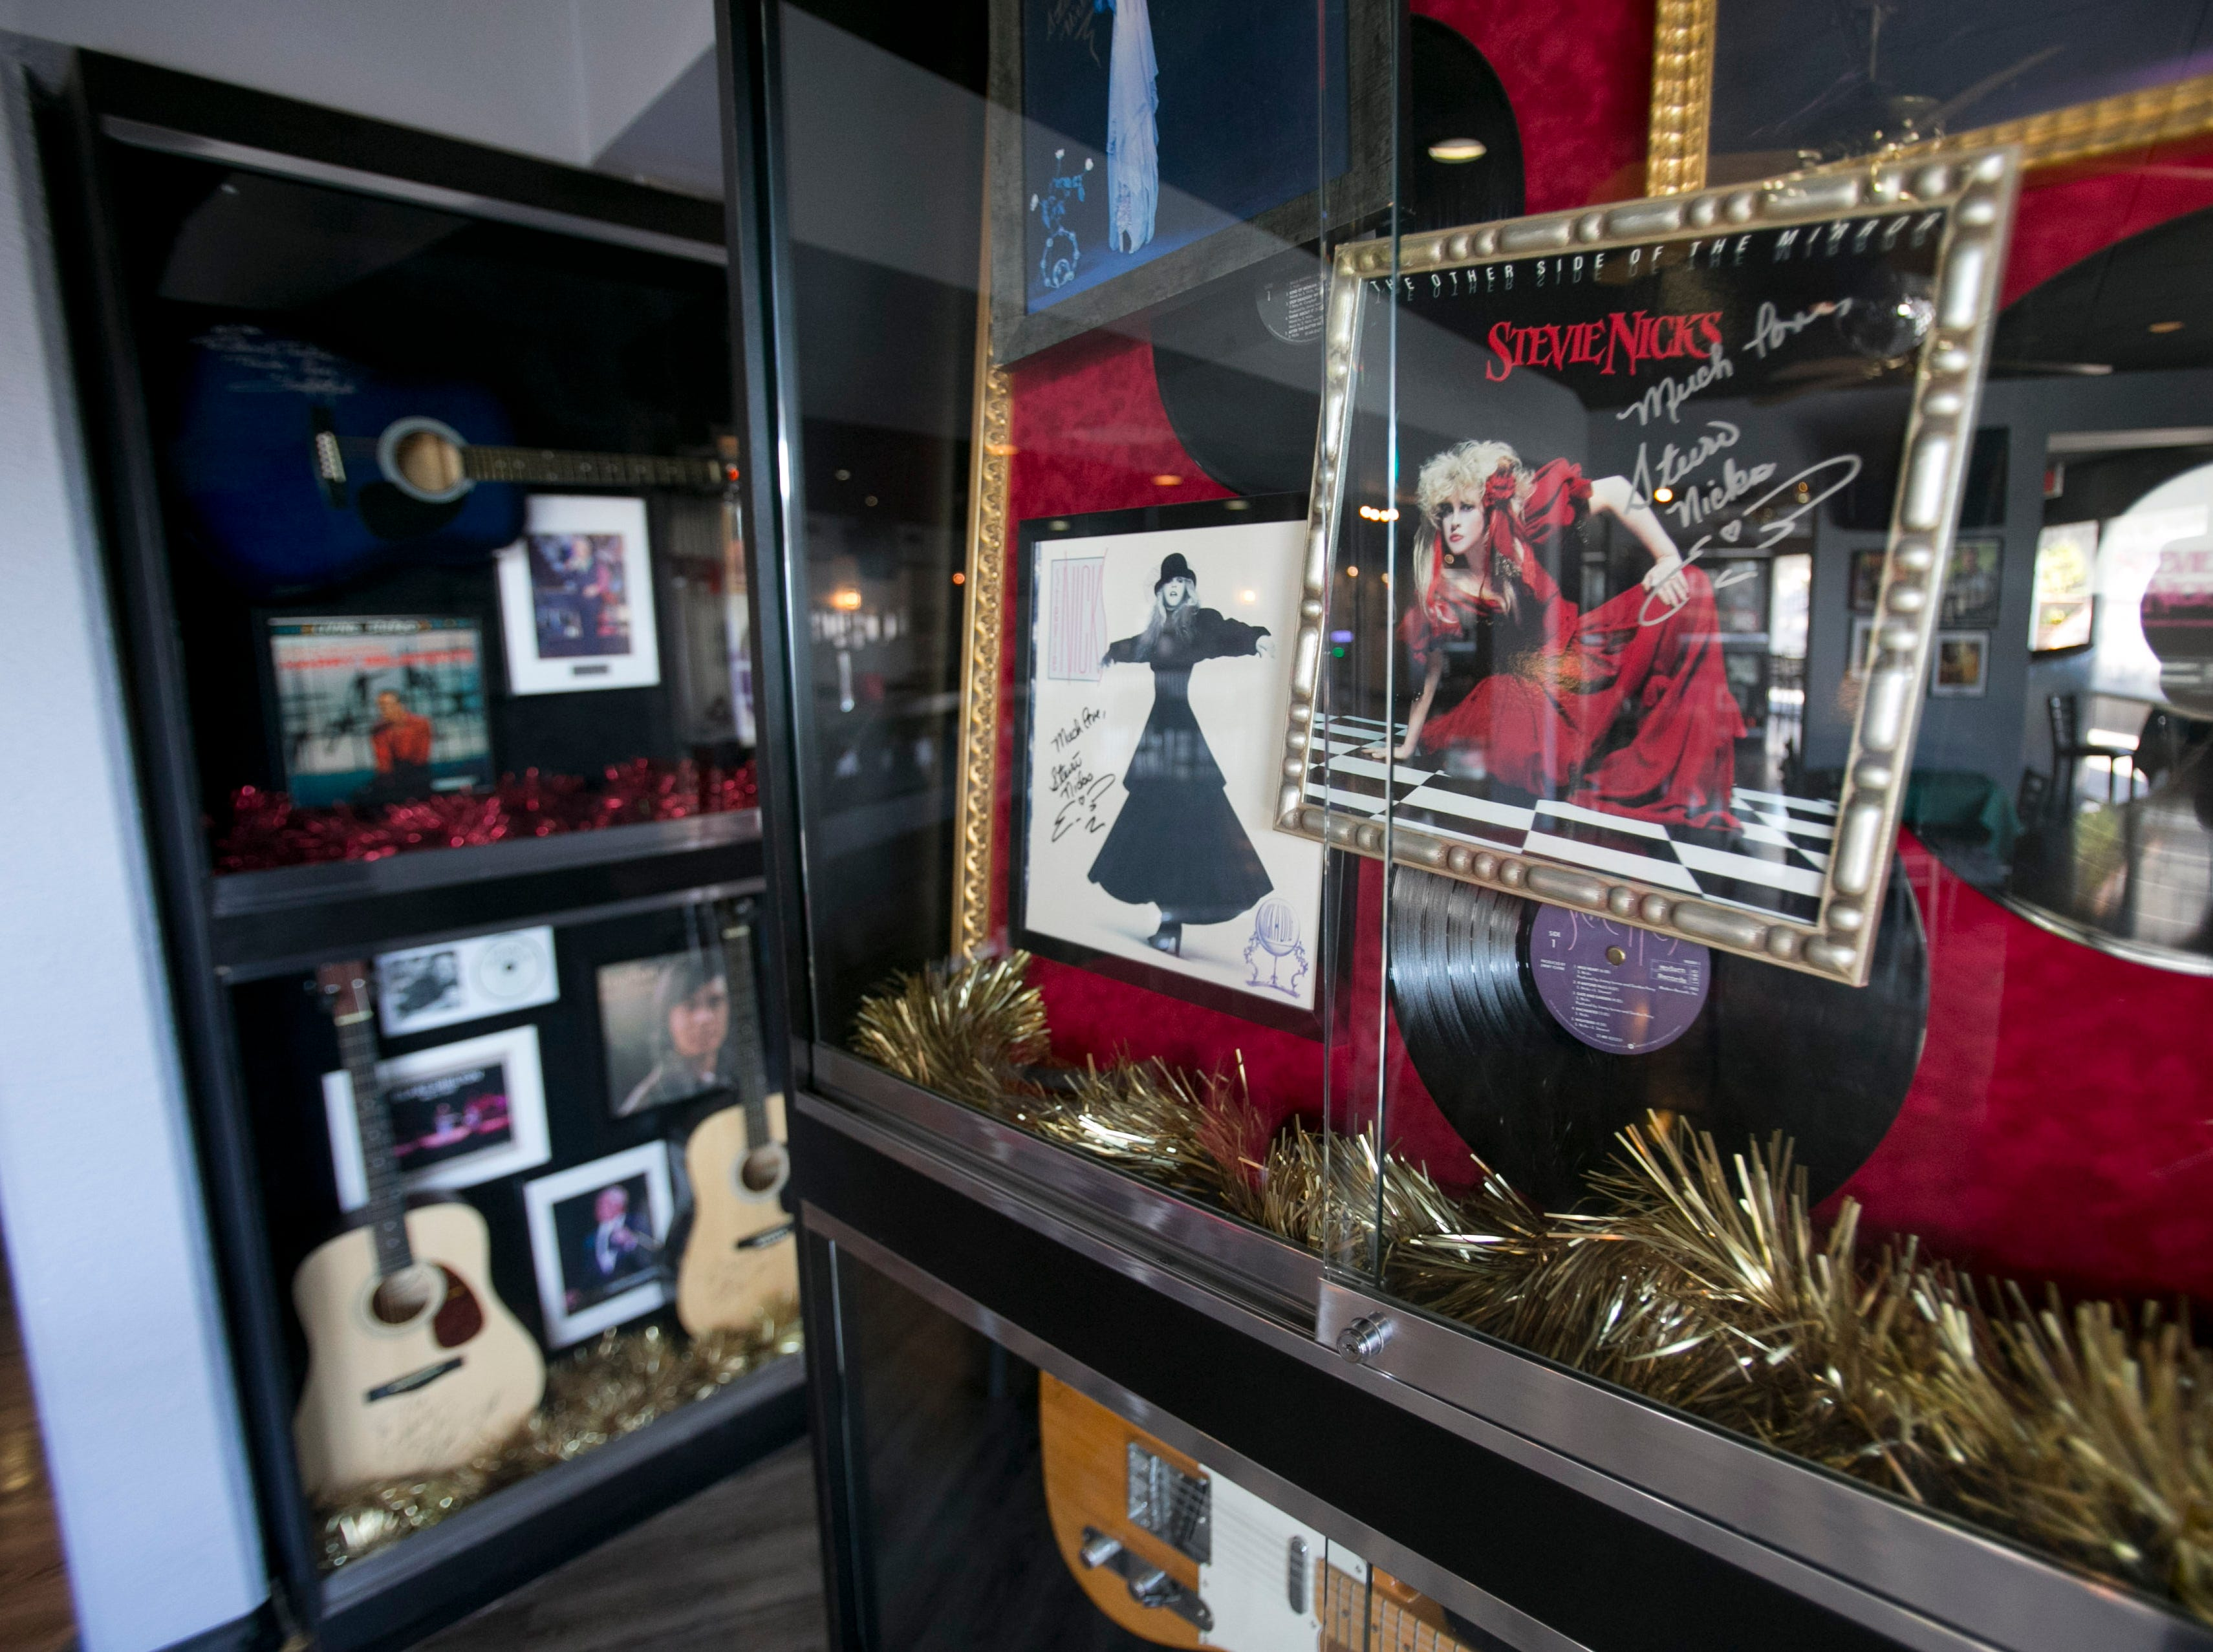 Stevie Nicks memorabilia is seen at the Celebrity Club in the Celebrity Theater in Phoenix Dec. 13, 2013.